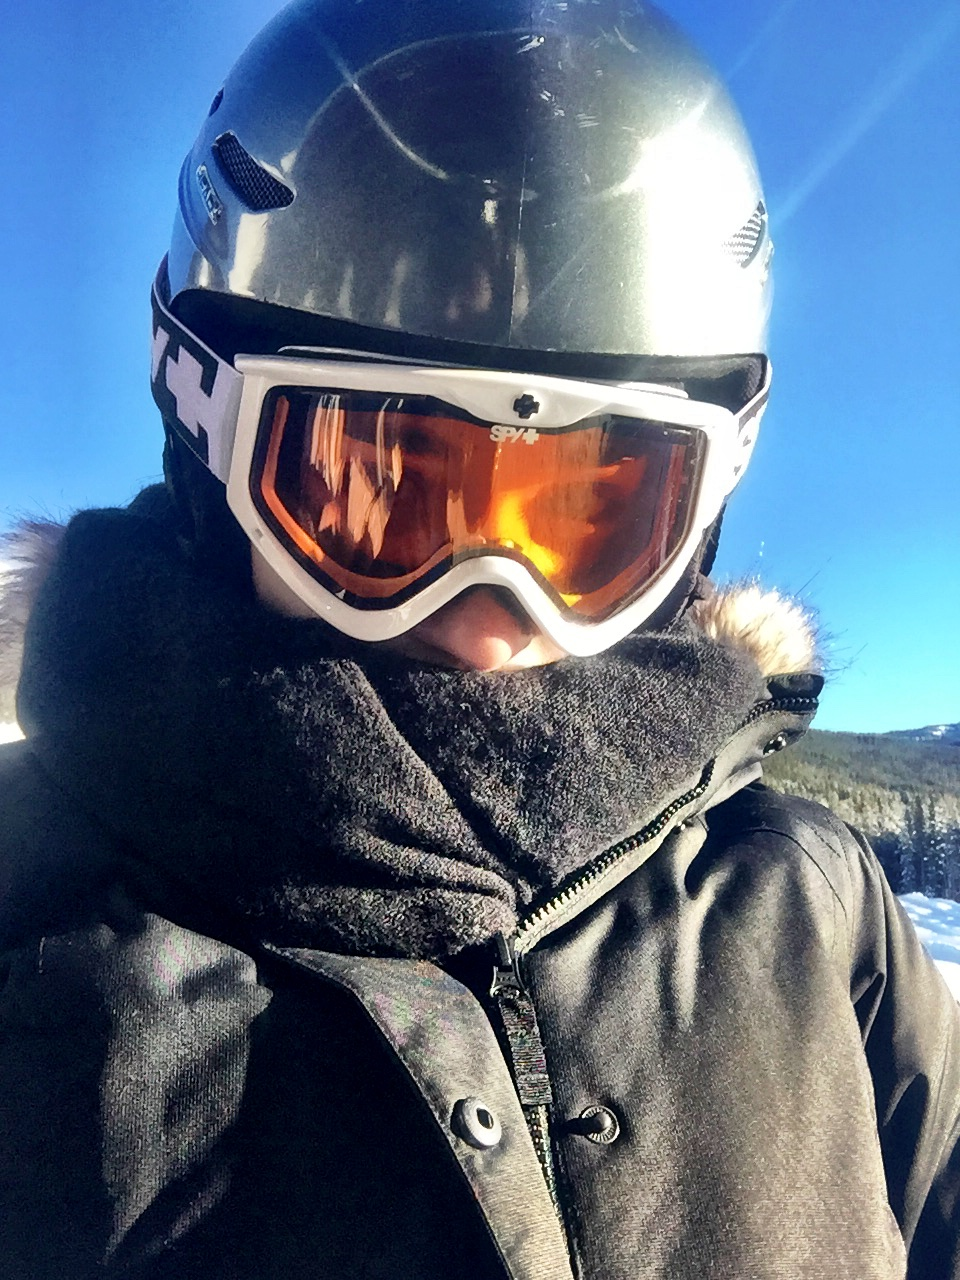 This scarf was a major key while shredding powder at the Lake Louise Ski Resort